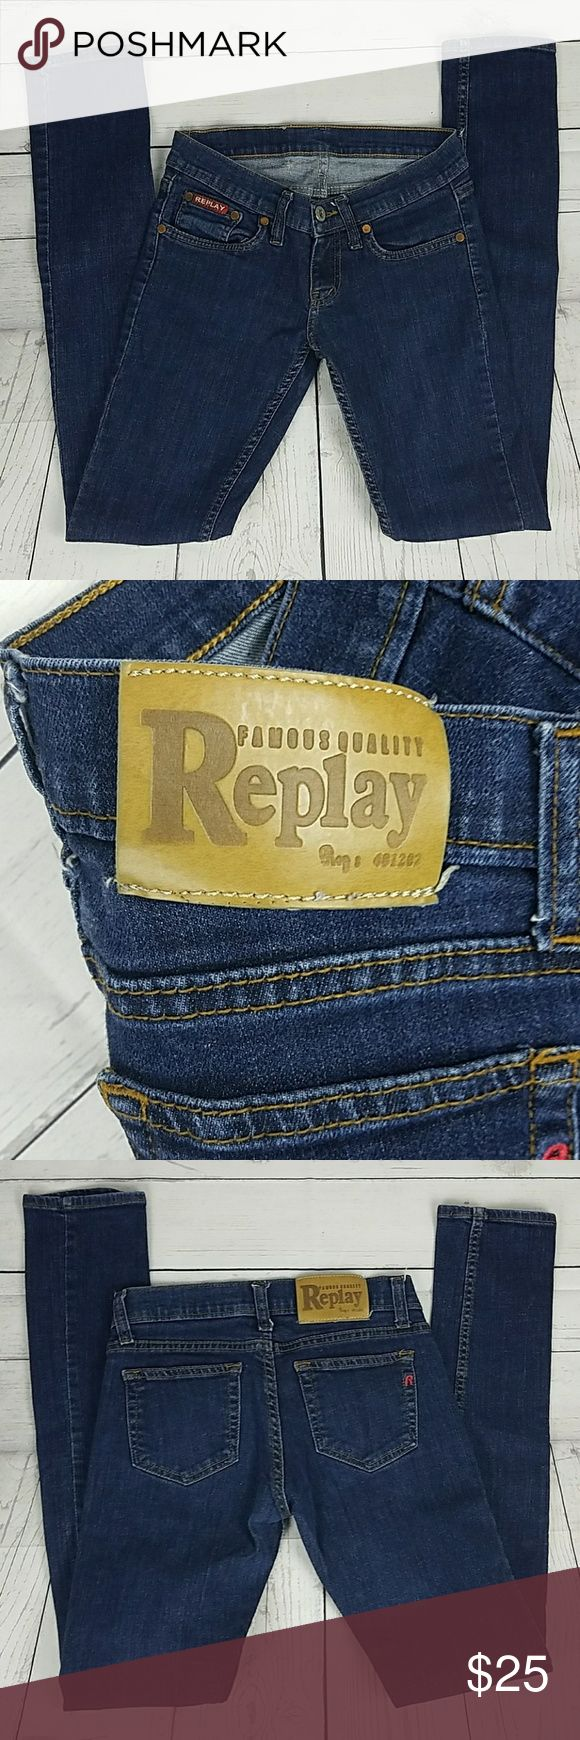 Replay Jean's Skinny Size 28 These Women's Replay Jean's are in good condition. Gently used. Skinny. Size 28 Inseam 30 Rise 6 inches Replay Jeans Skinny